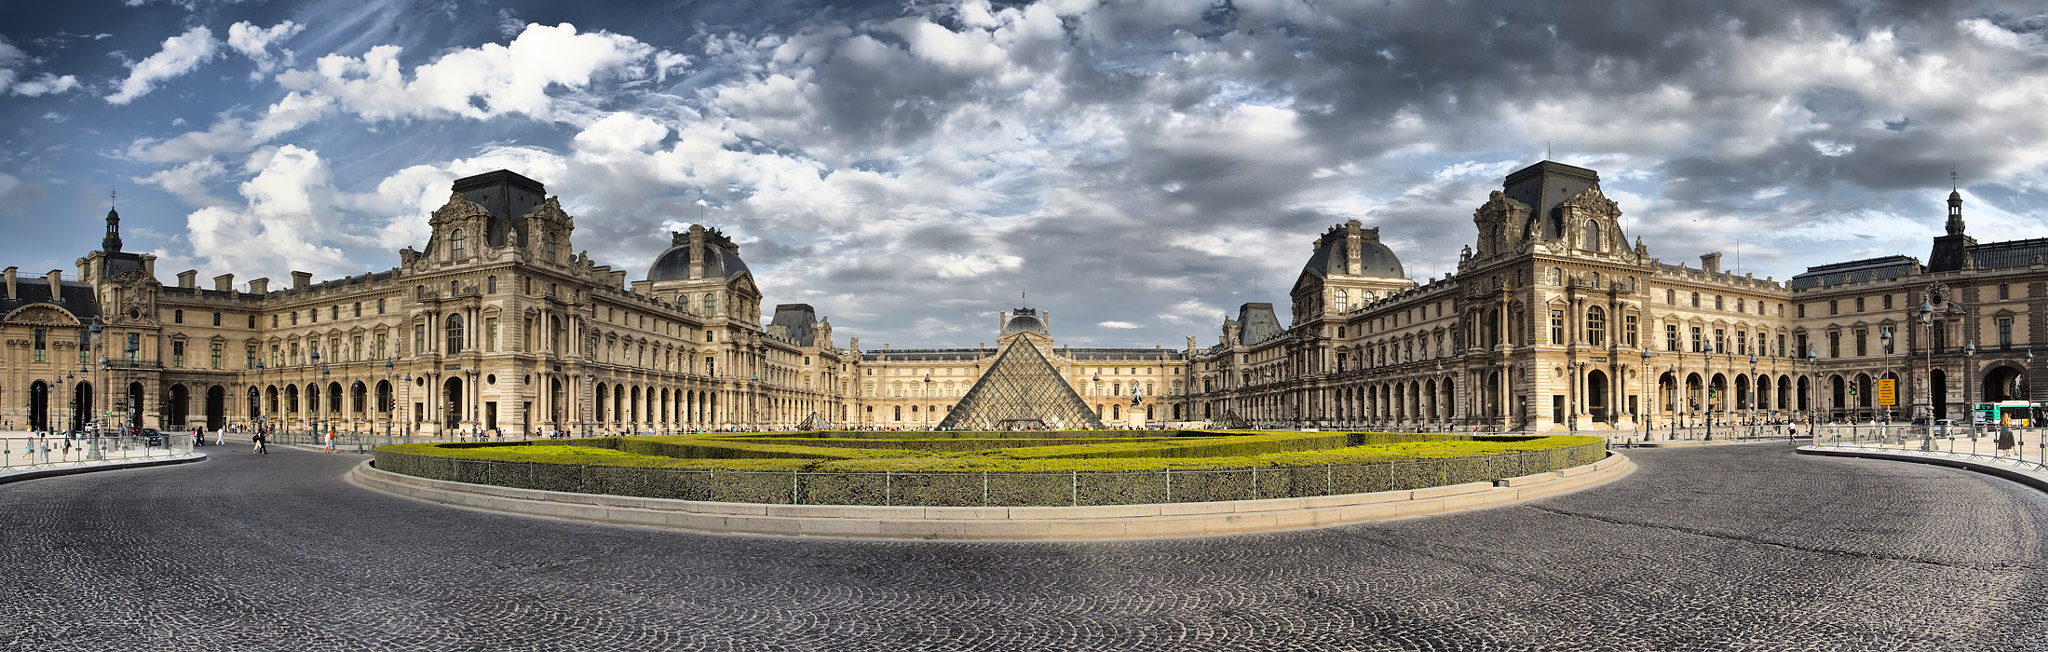 Photograph Le Louvre by Sergey Shaposhnikov on 500px